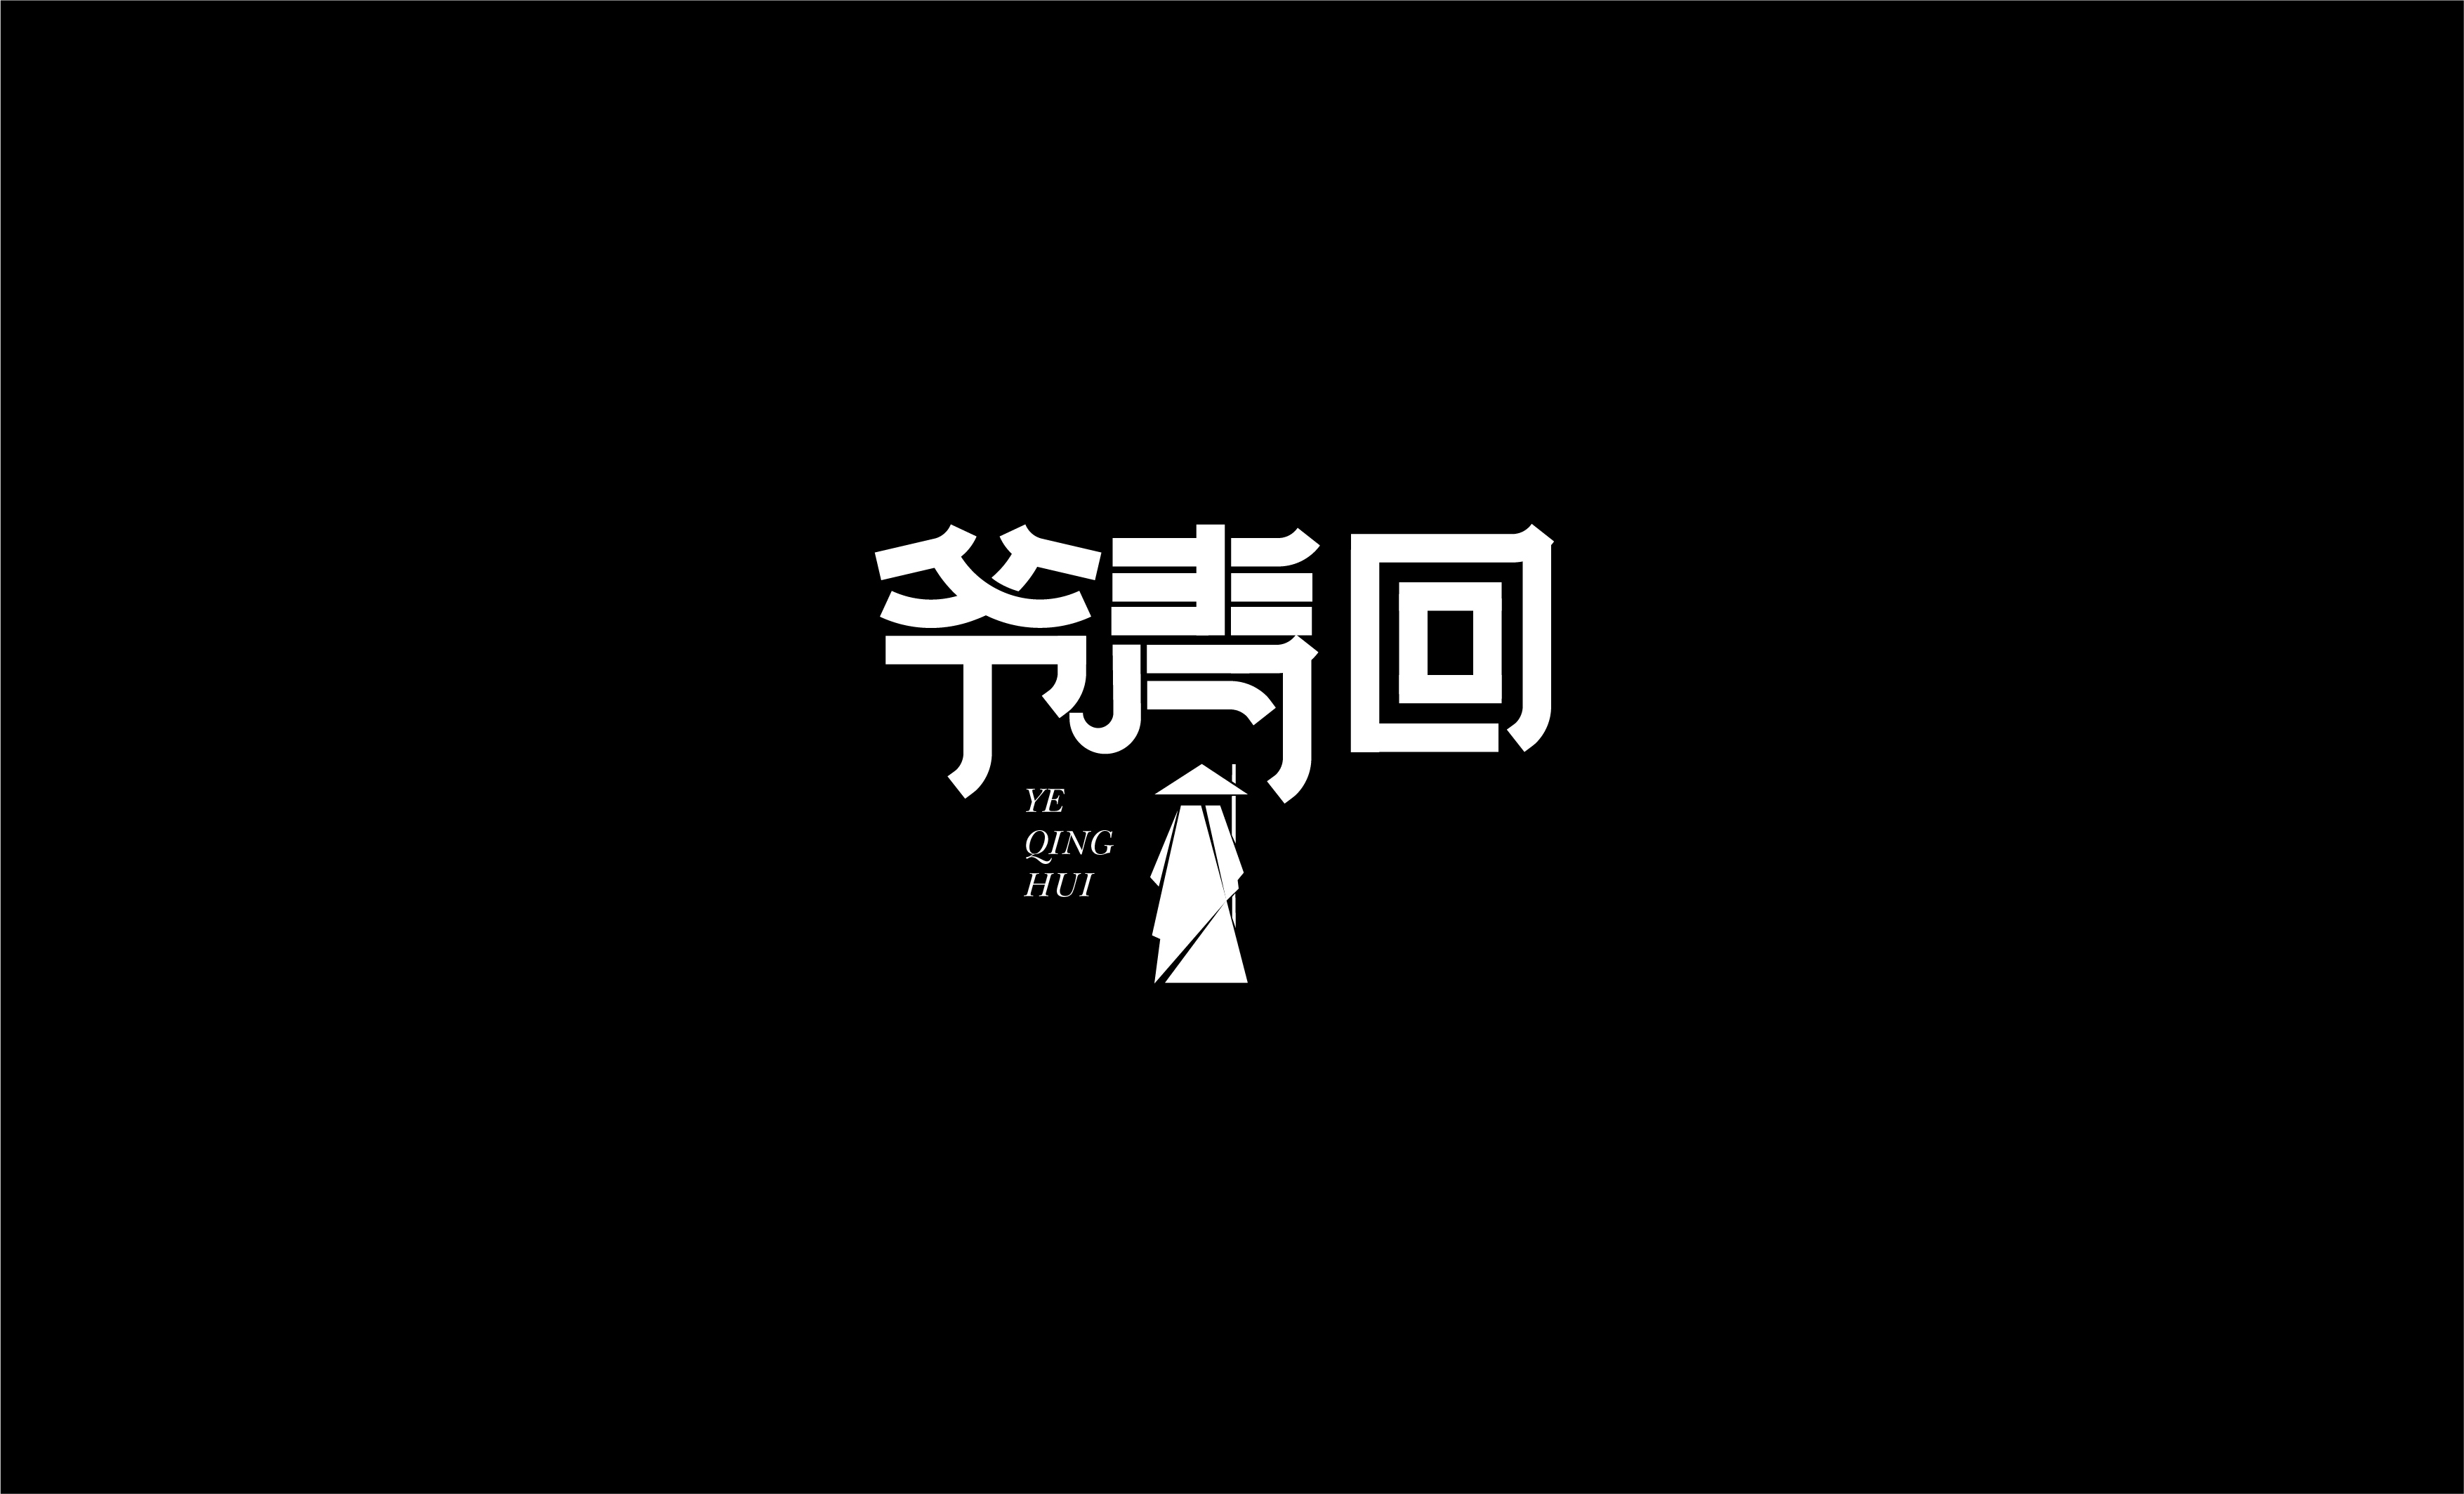 22P Collection of the latest Chinese font design schemes in 2021 #.53